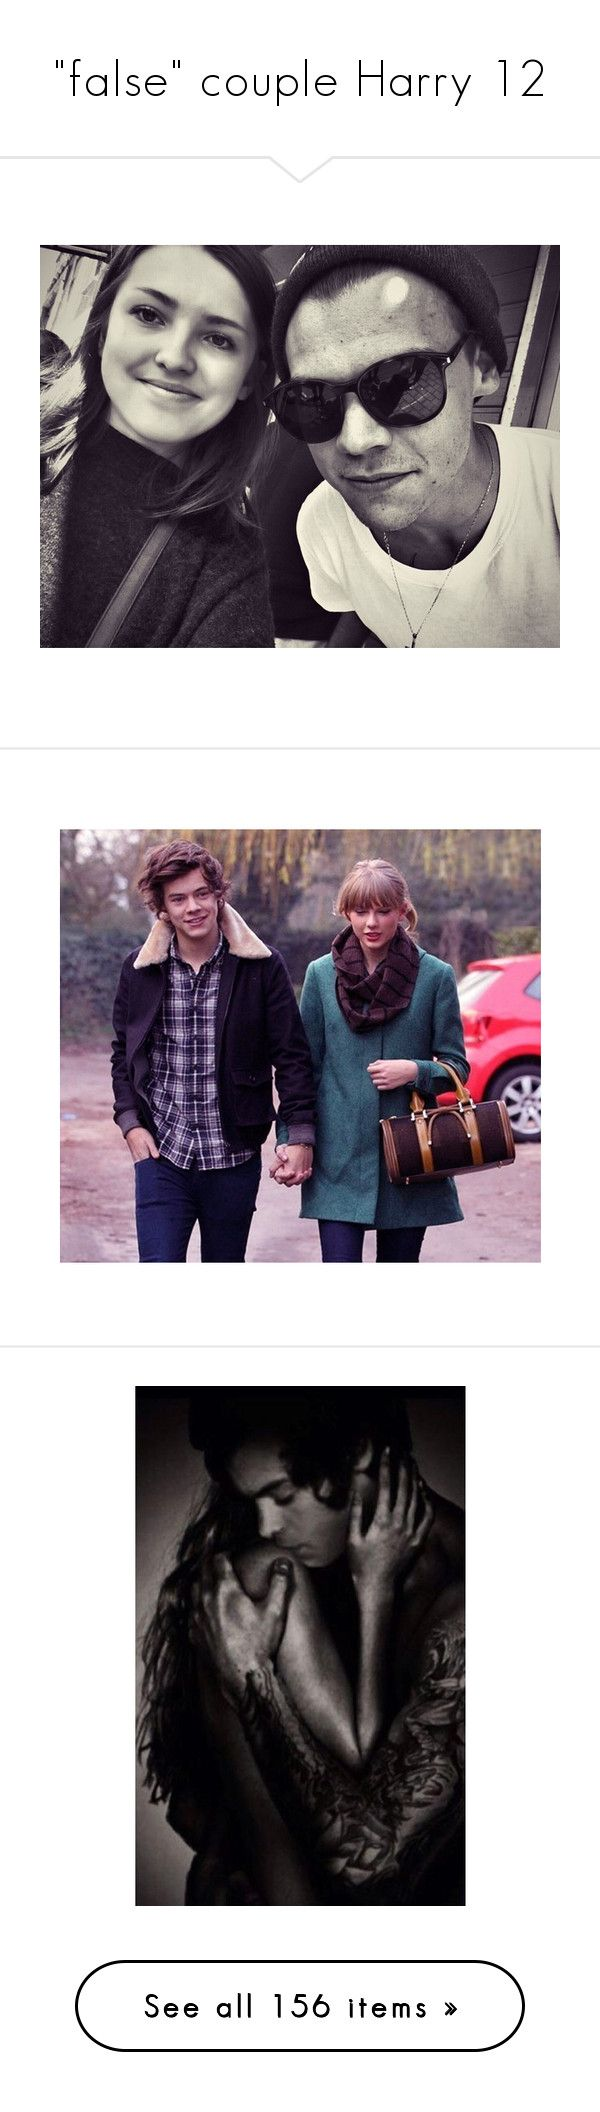 """""""""""false"""" couple Harry 12"""" by ivystyles ❤ liked on Polyvore featuring & - pictures - taylor swift, taylor swift, hendall, harry styles, one direction, harry, people, 1d, kendall jenner and pictures"""